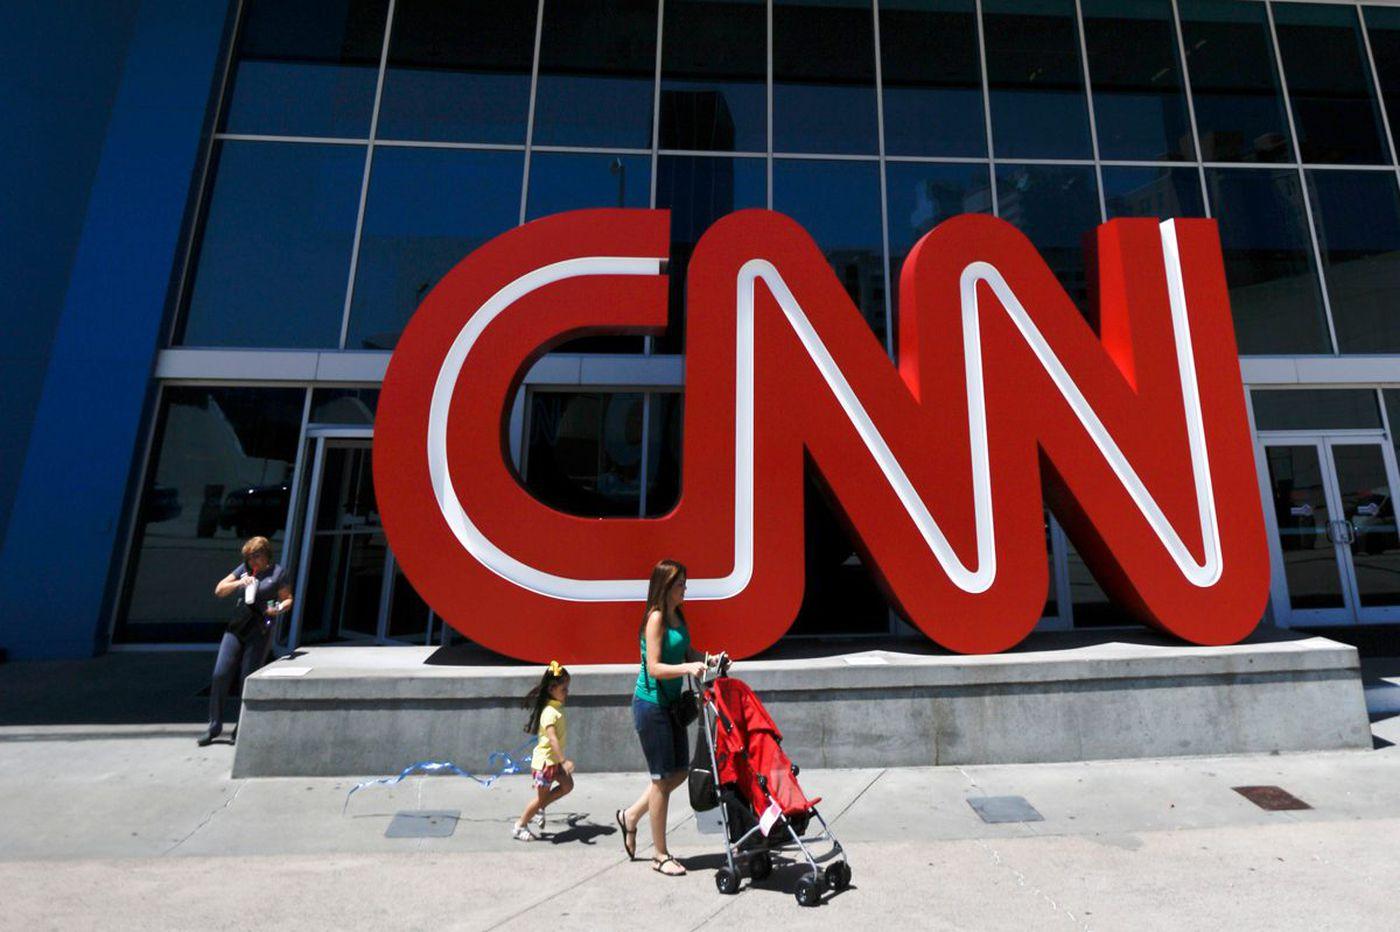 Mich. man accused of threatening to attack CNN identified with Hitler, former classmate says